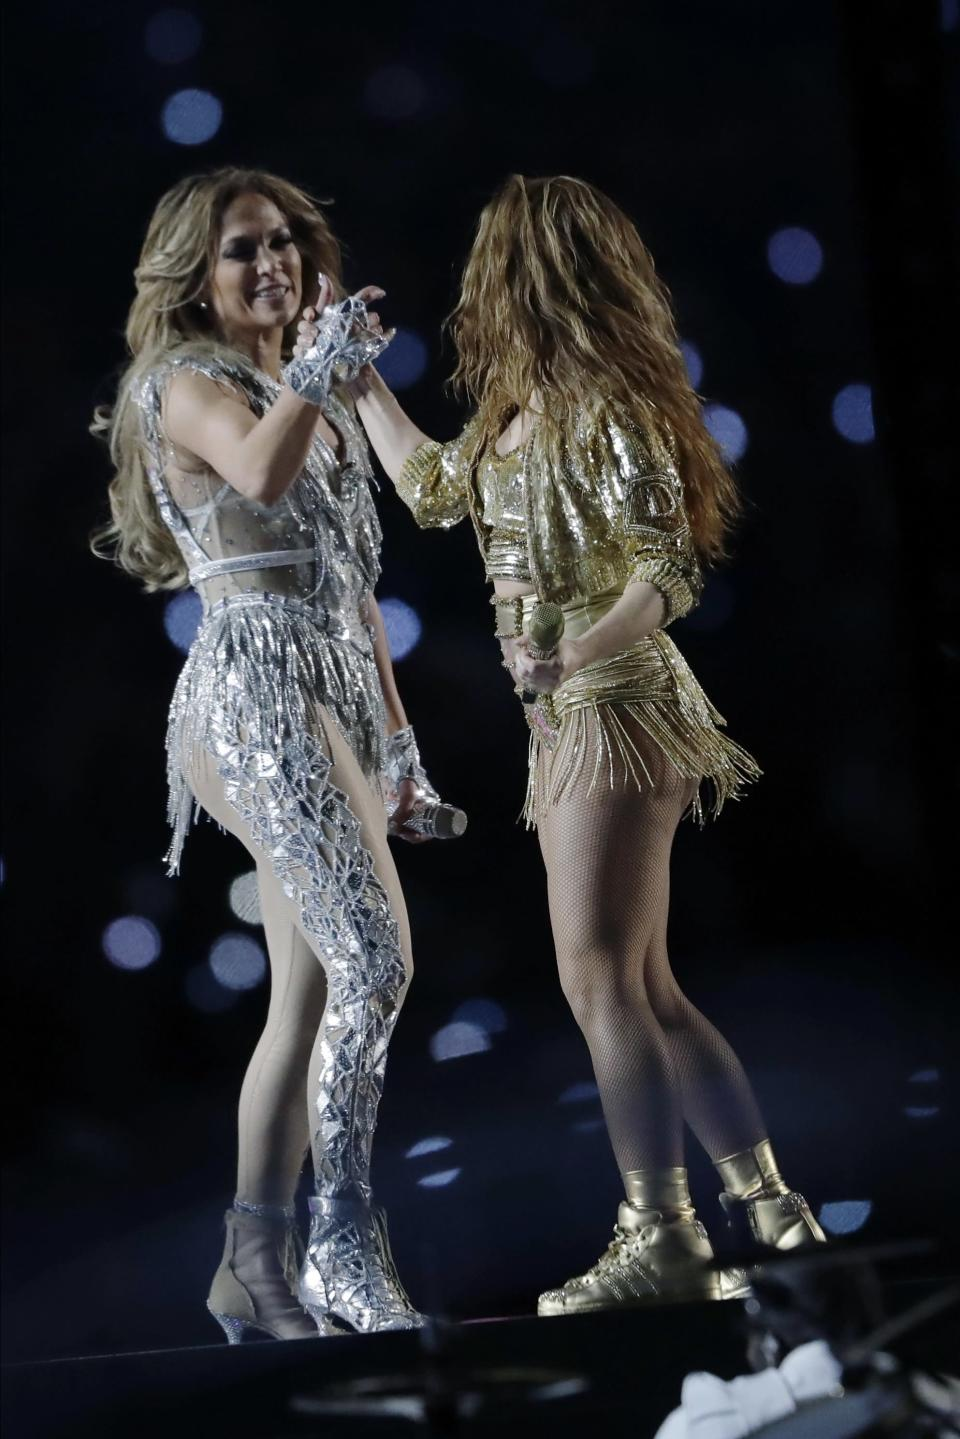 Jennifer Lopez, left, and Shakira perform during halftime of the NFL Super Bowl 54 football game between the San Francisco 49ers and the Kansas City Chiefs Sunday, Feb. 2, 2020, in Miami Gardens, Fla. (AP Photo/John Bazemore)